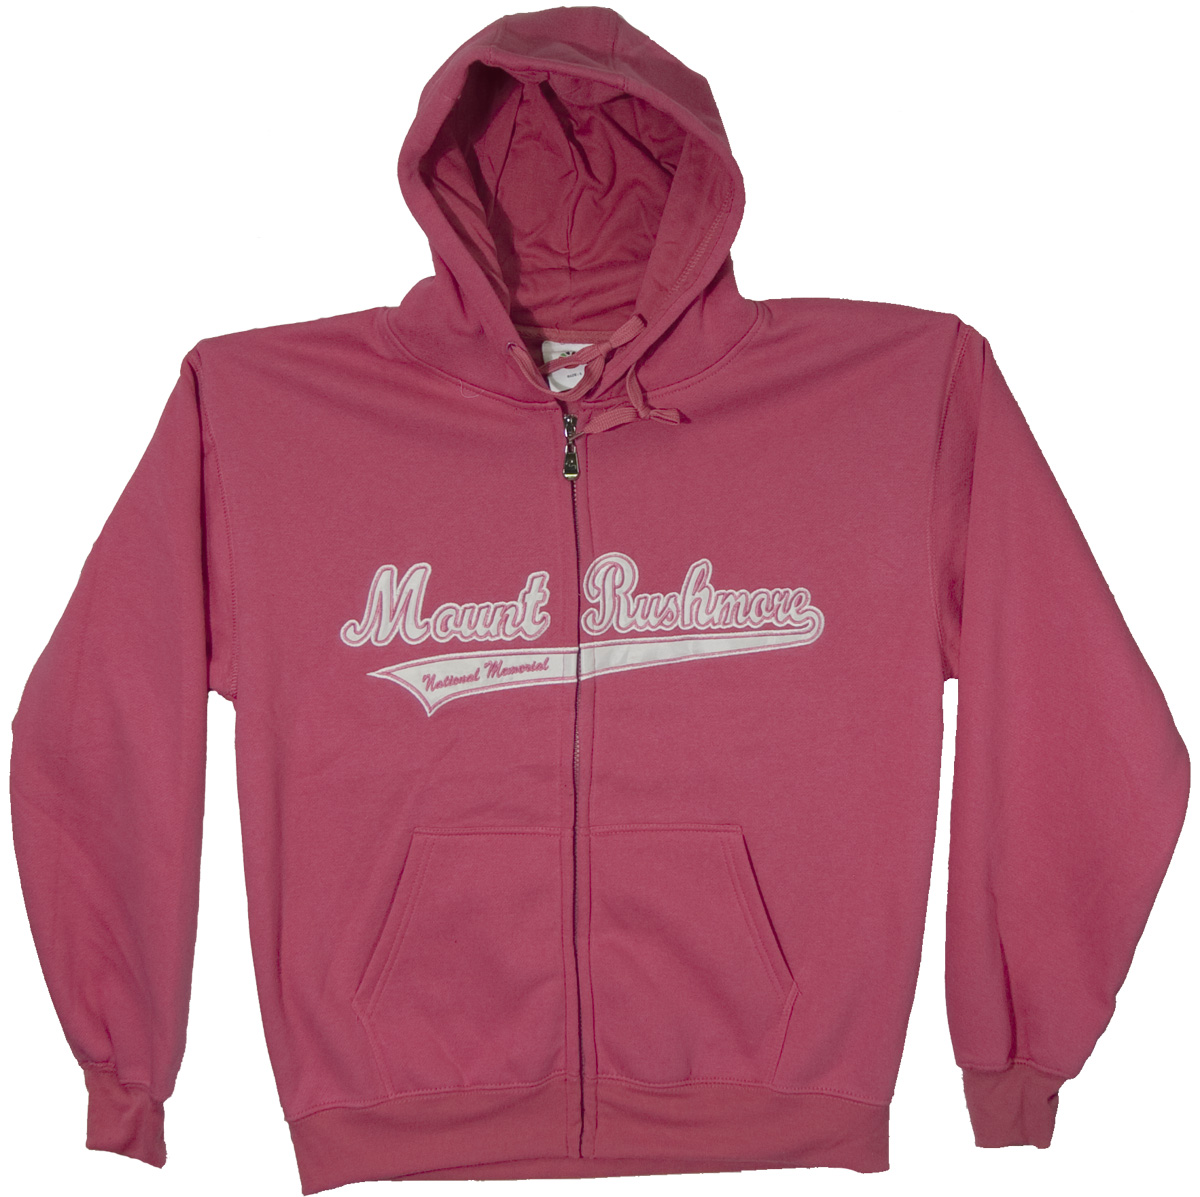 (M) MOUNT RUSHMORE HOT PINK APPLIQUE ZIP HOODY